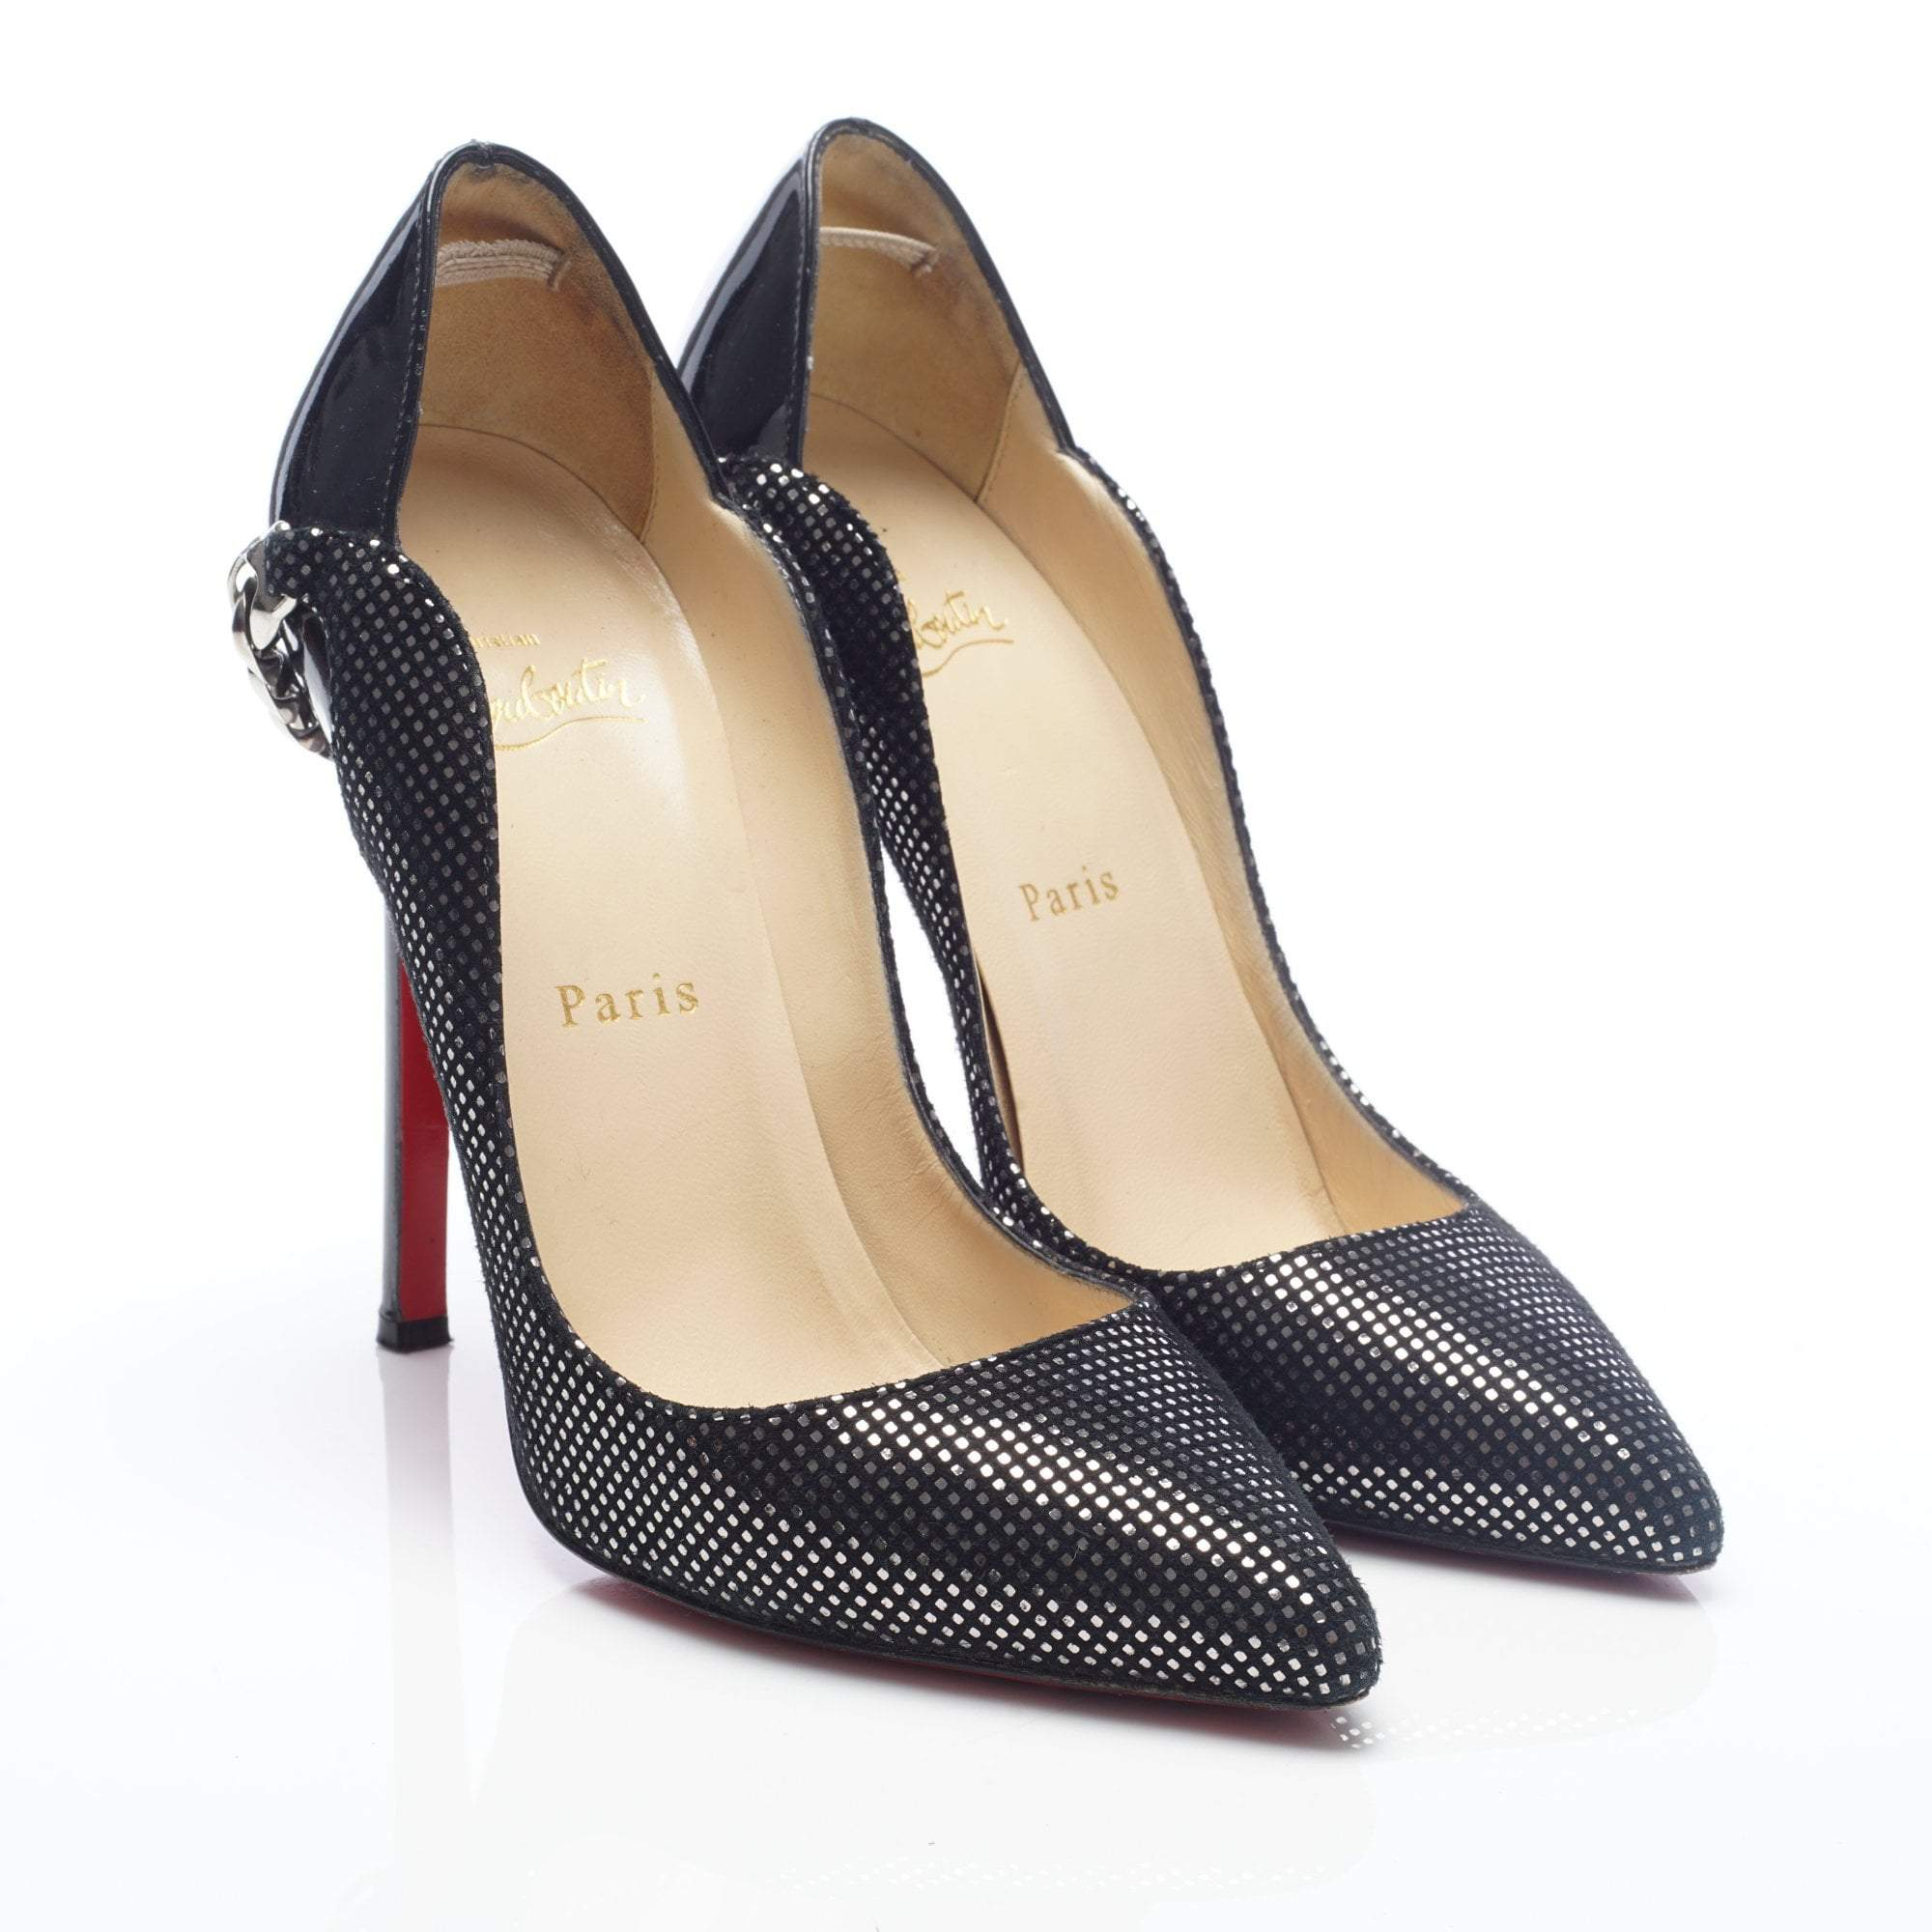 Christian Louboutin Black Metallic Square Suede Dorepi Chain Pumps